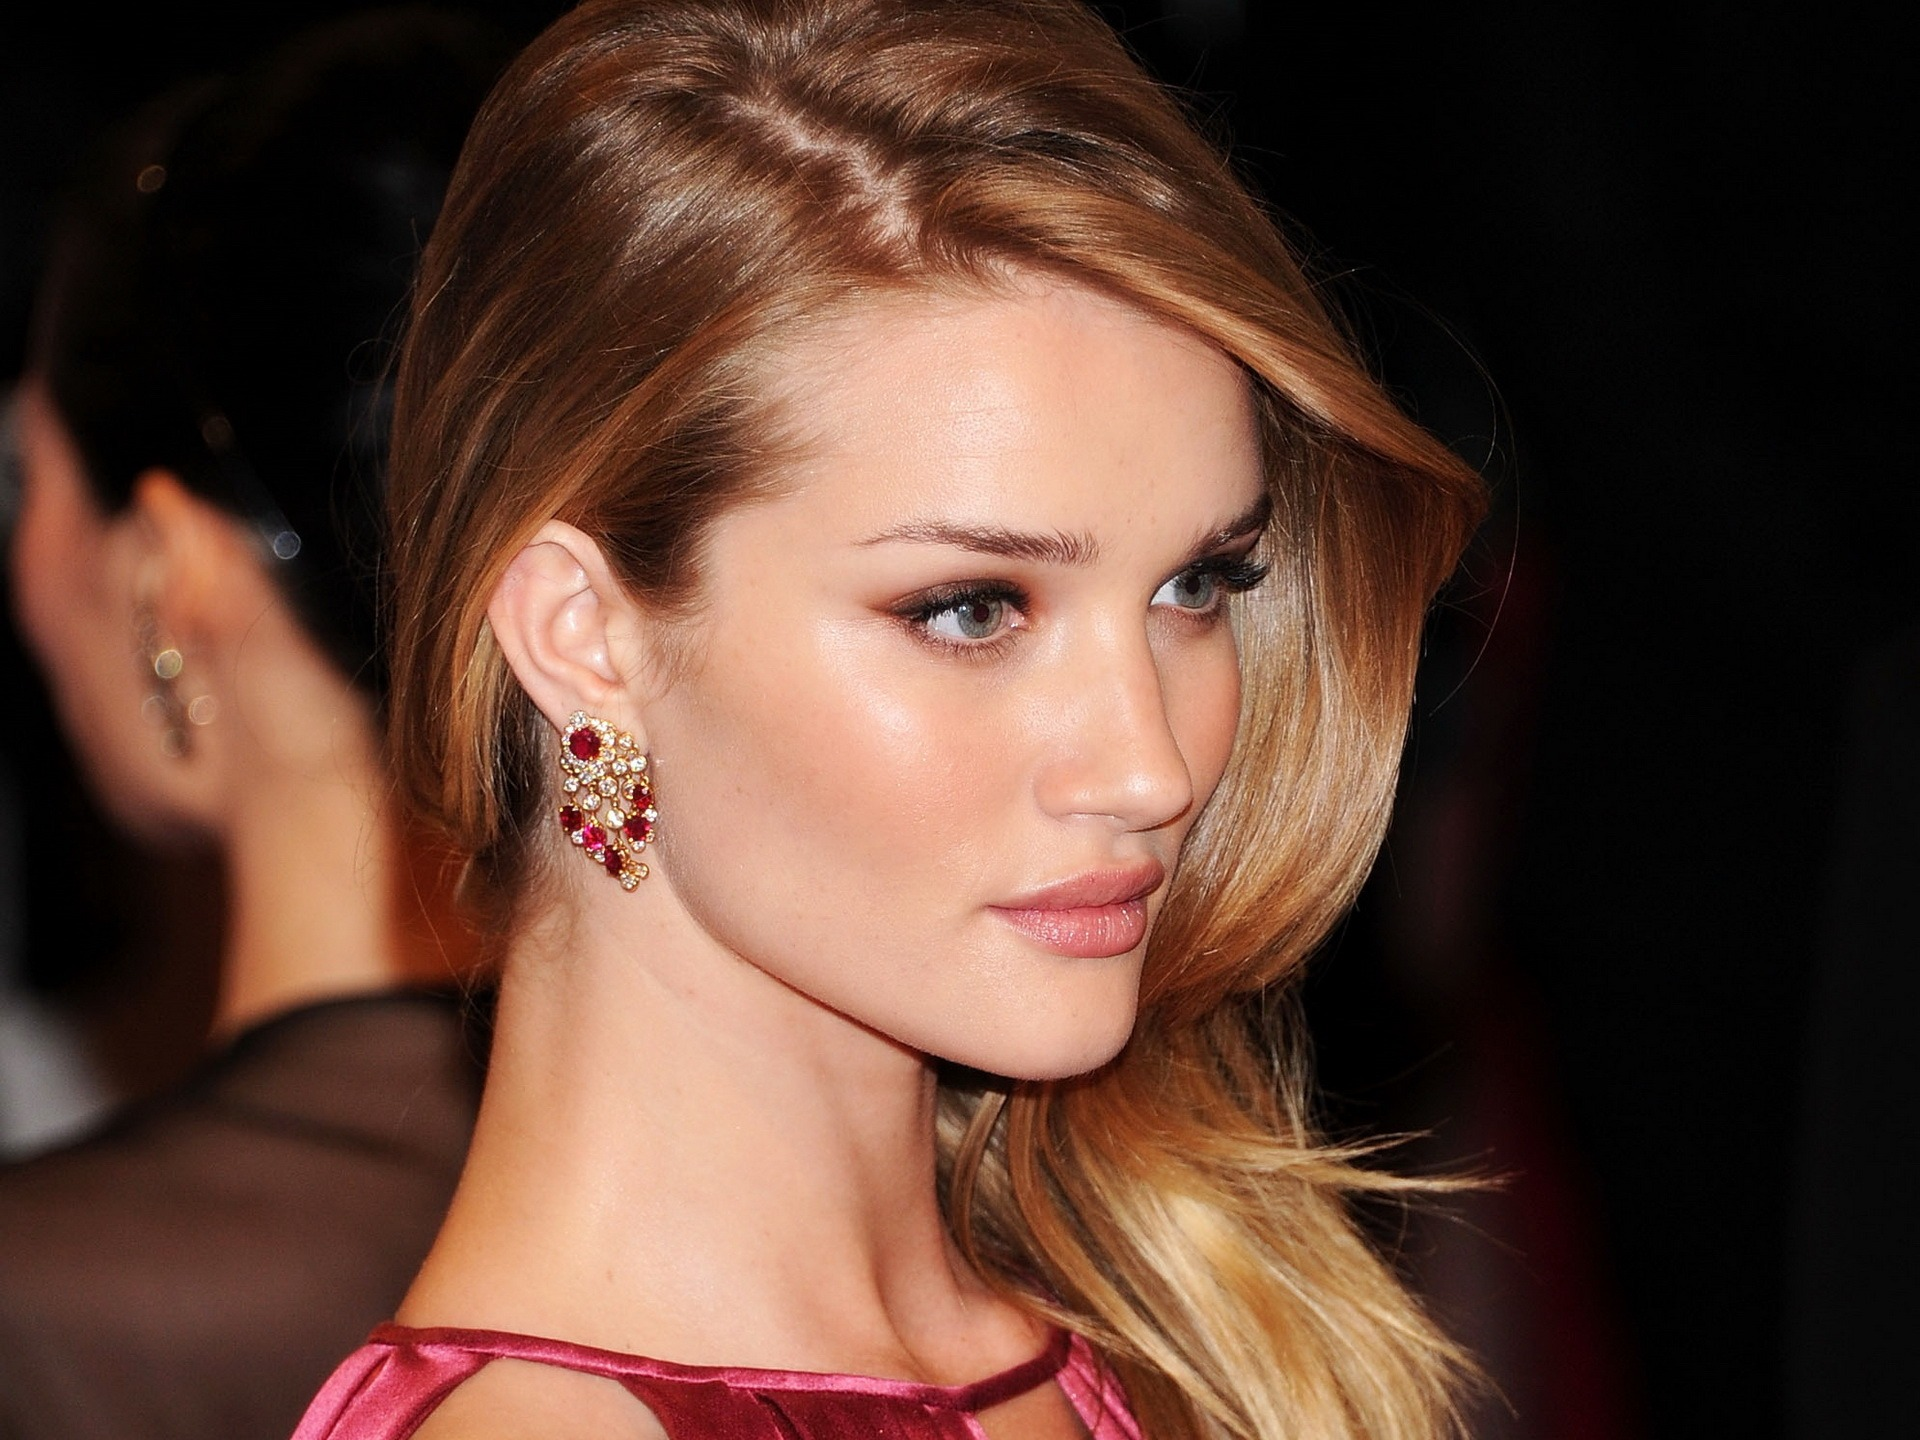 Rosie Huntington Whiteley #006 - 1920x1440 Wallpapers Pictures Photos Images